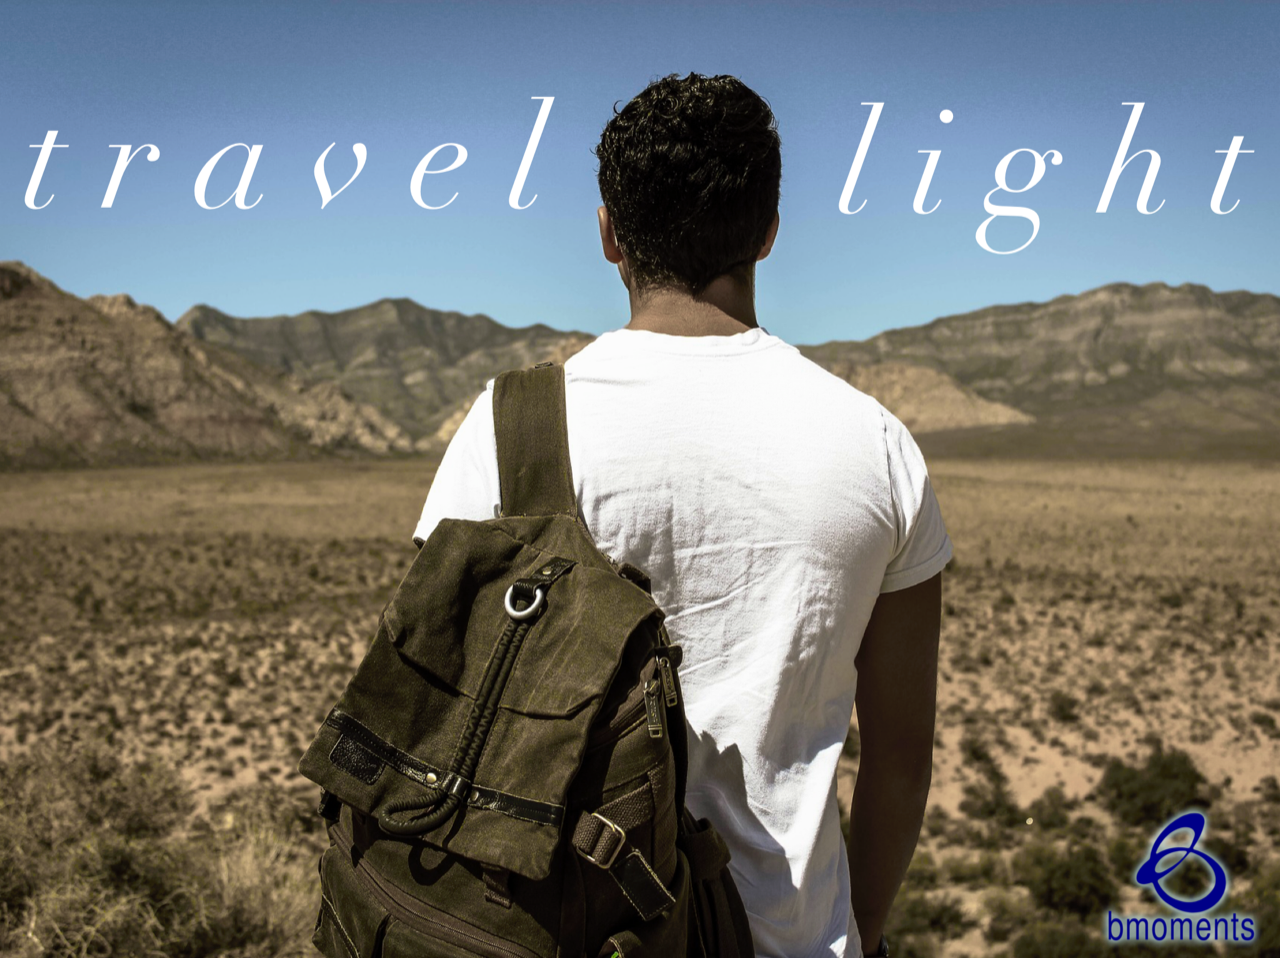 God Wants You to Travel Light